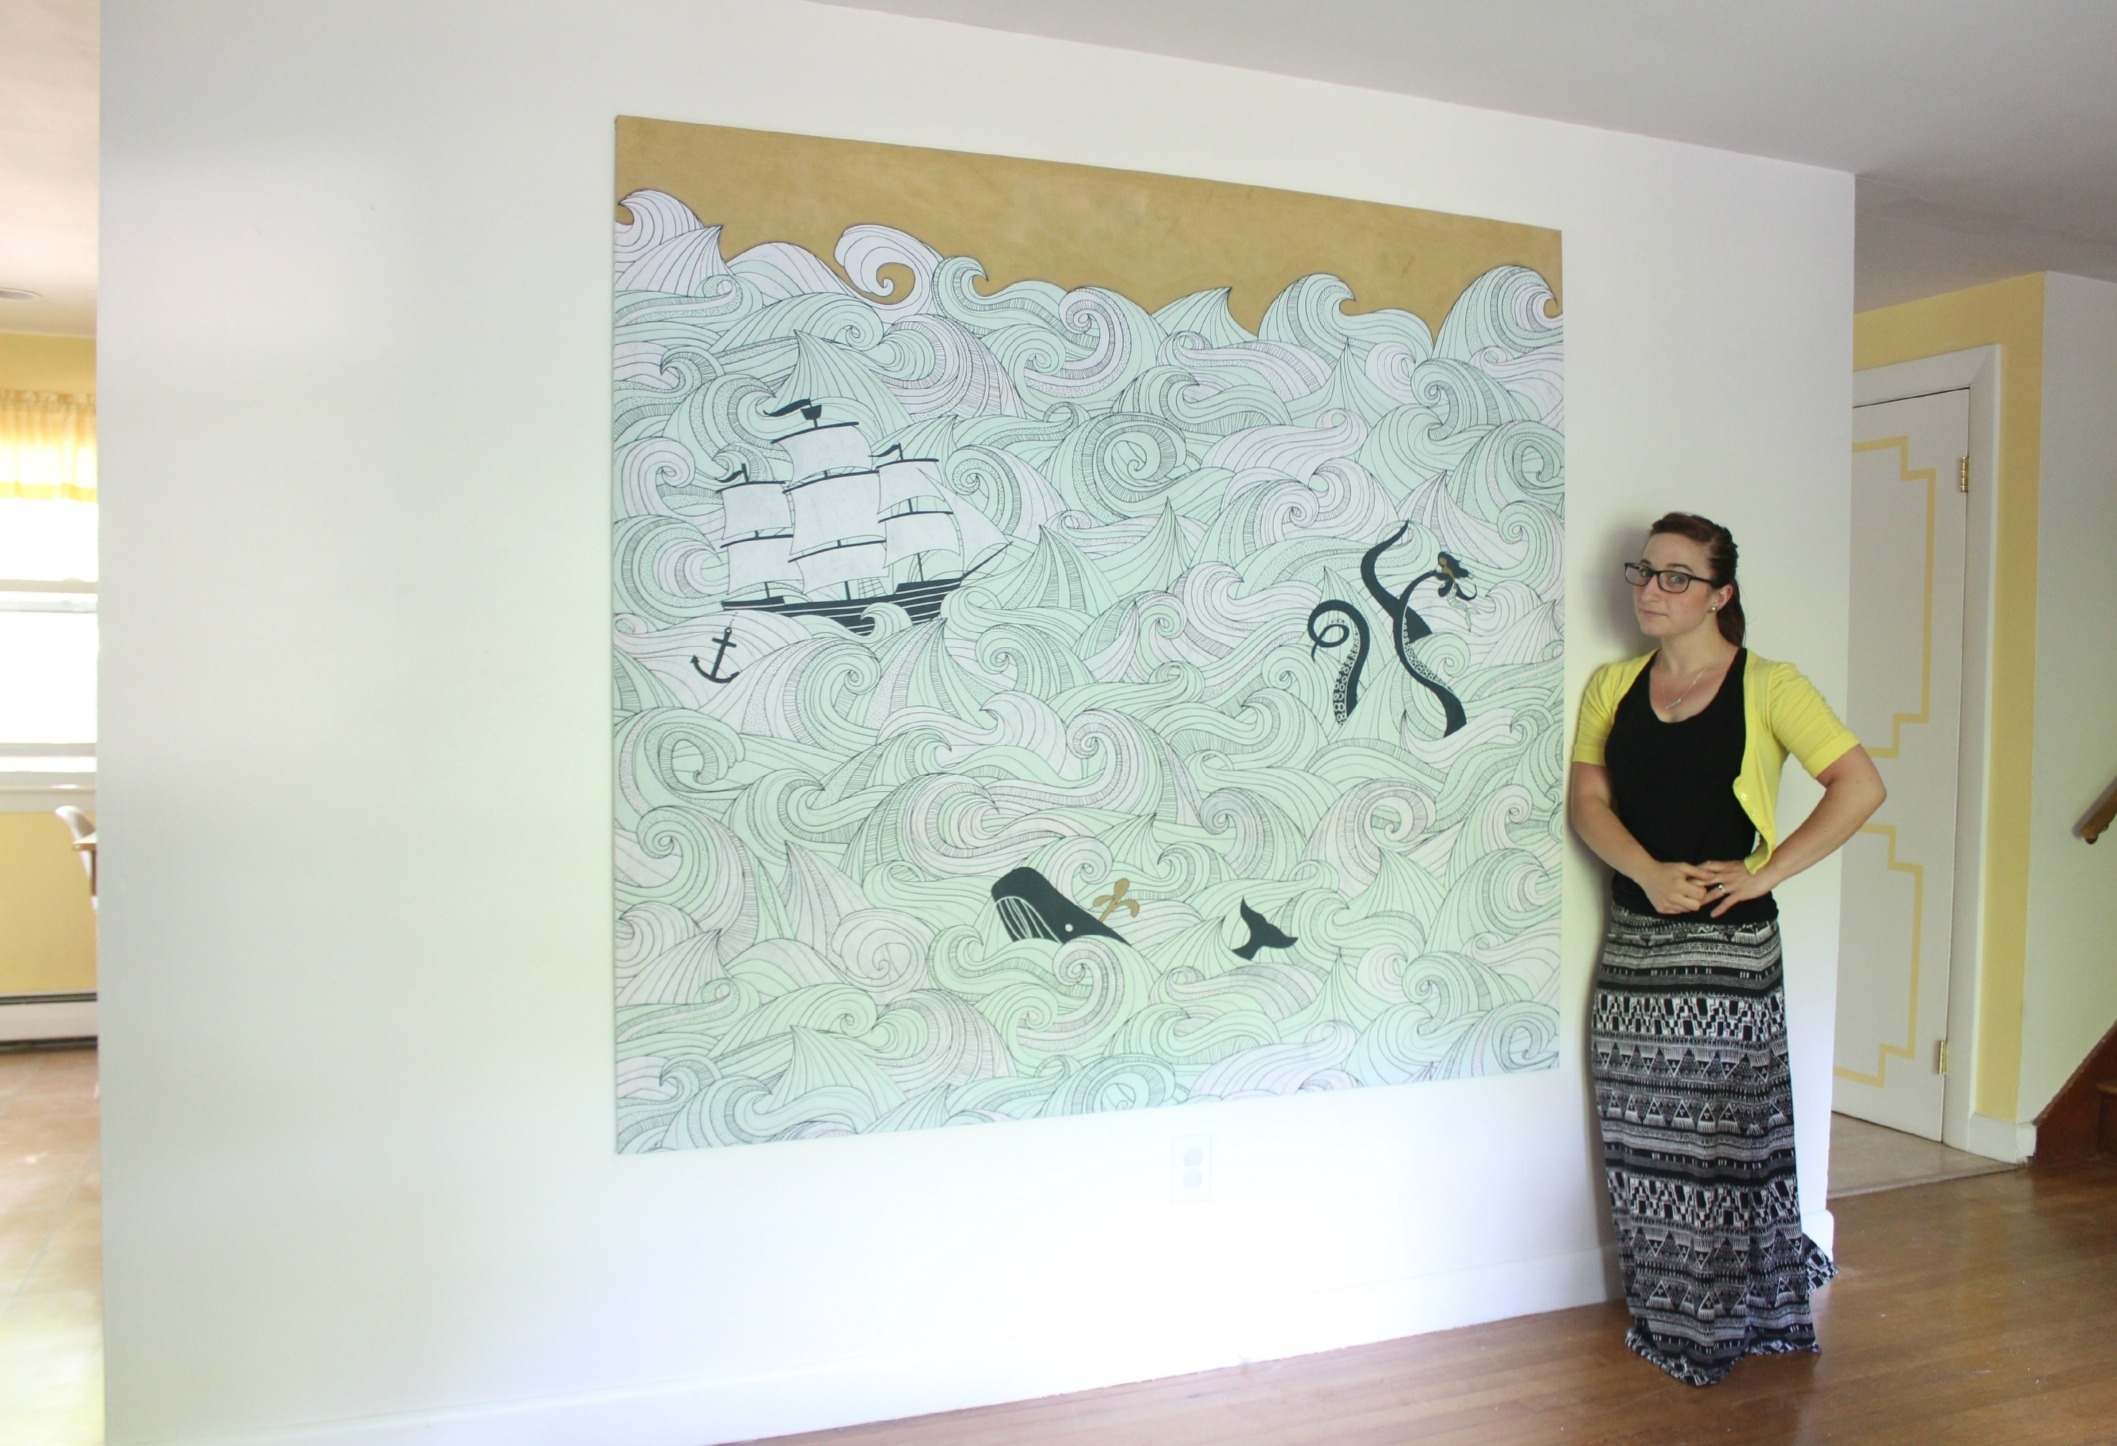 Diy Stretched Fabric Canvas (With A Shower Curtain!) | Stephanie Regarding Latest Large Fabric Wall Art (View 3 of 15)